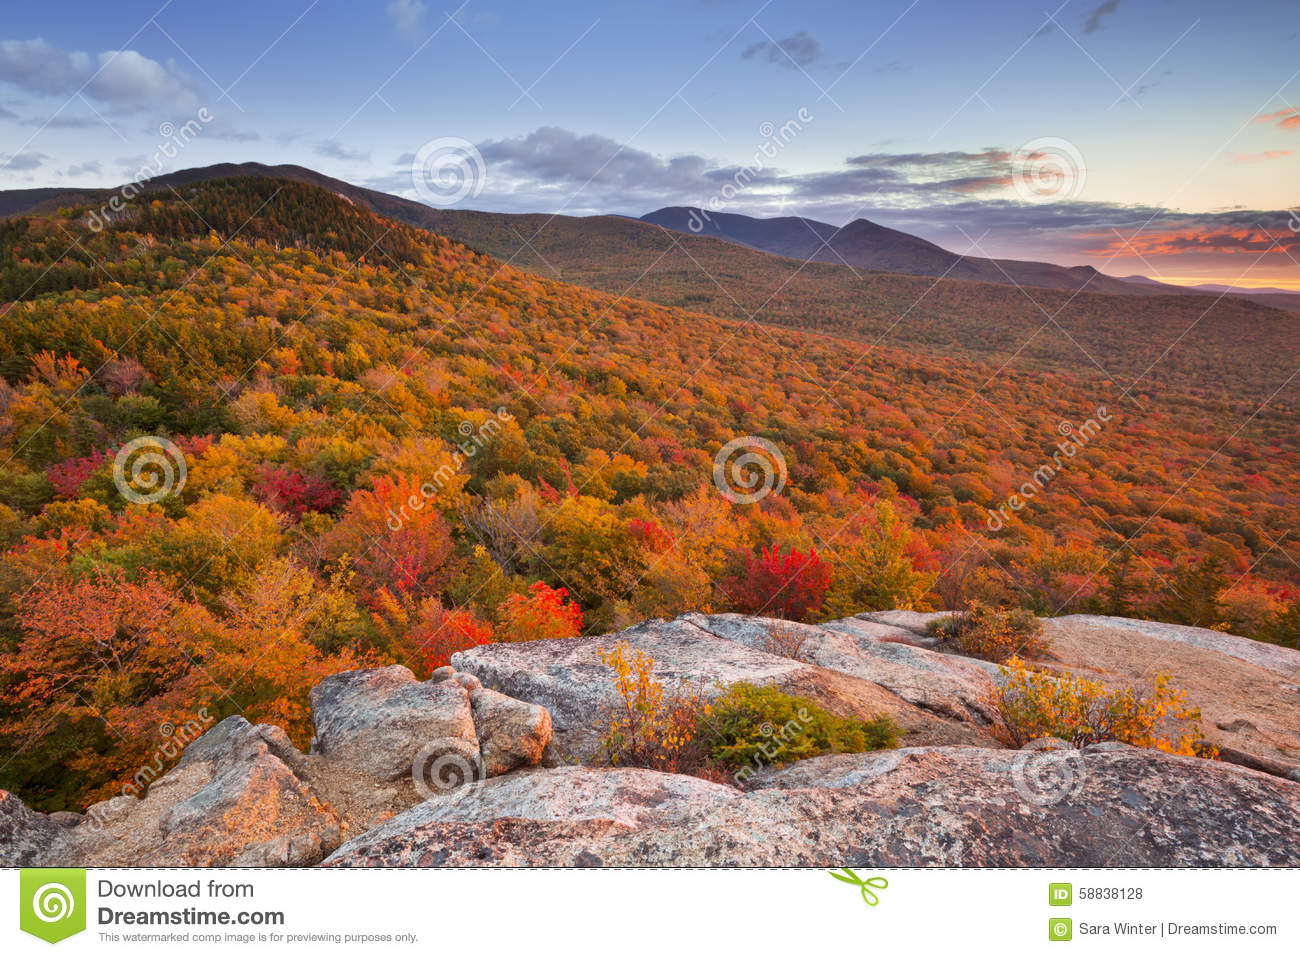 map new hampshire with Stock Photo Endless Forests Fall Foliage New H Shire Usa White Mountain National Forest Photographed North Sugarloaf Image58838128 on Manchester furthermore Gstaad additionally Exeter likewise Pong 31 as well File Portsmouth Historic Dockyard.